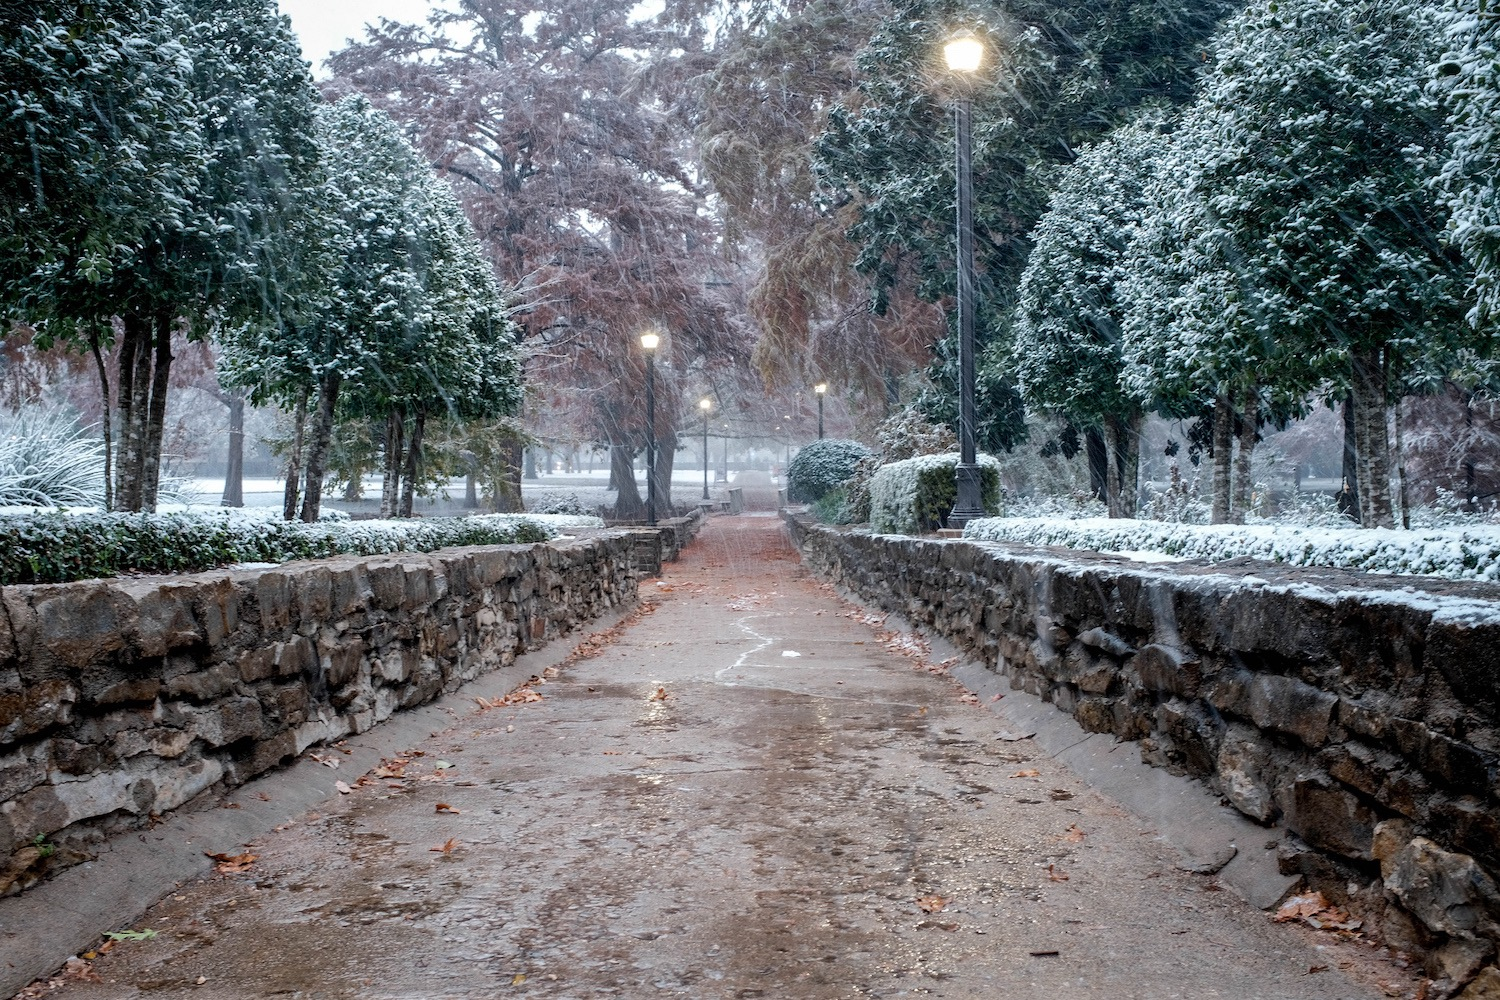 https://i2.wp.com/digital-photography-school.com/wp-content/uploads/2018/12/jpeg-sliders-winter-snow.jpg?resize=1500%2C1000&ssl=1